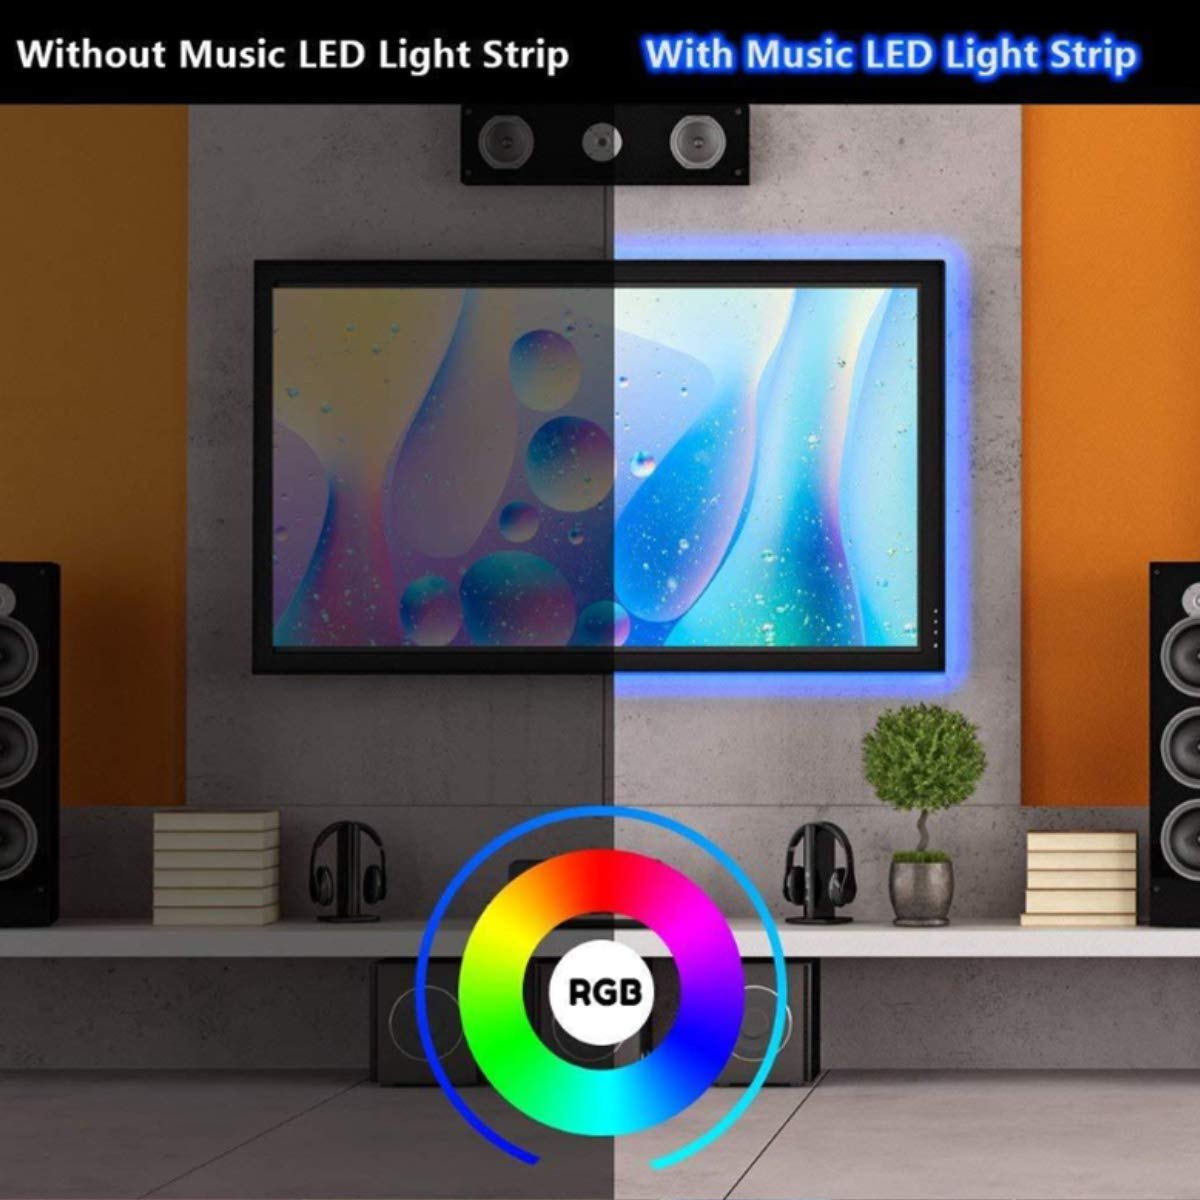 16.4FT SMD 5050 Waterproof LED RGB Flexible LED Strip Light Lamp Kit (300 Light with Adapter)